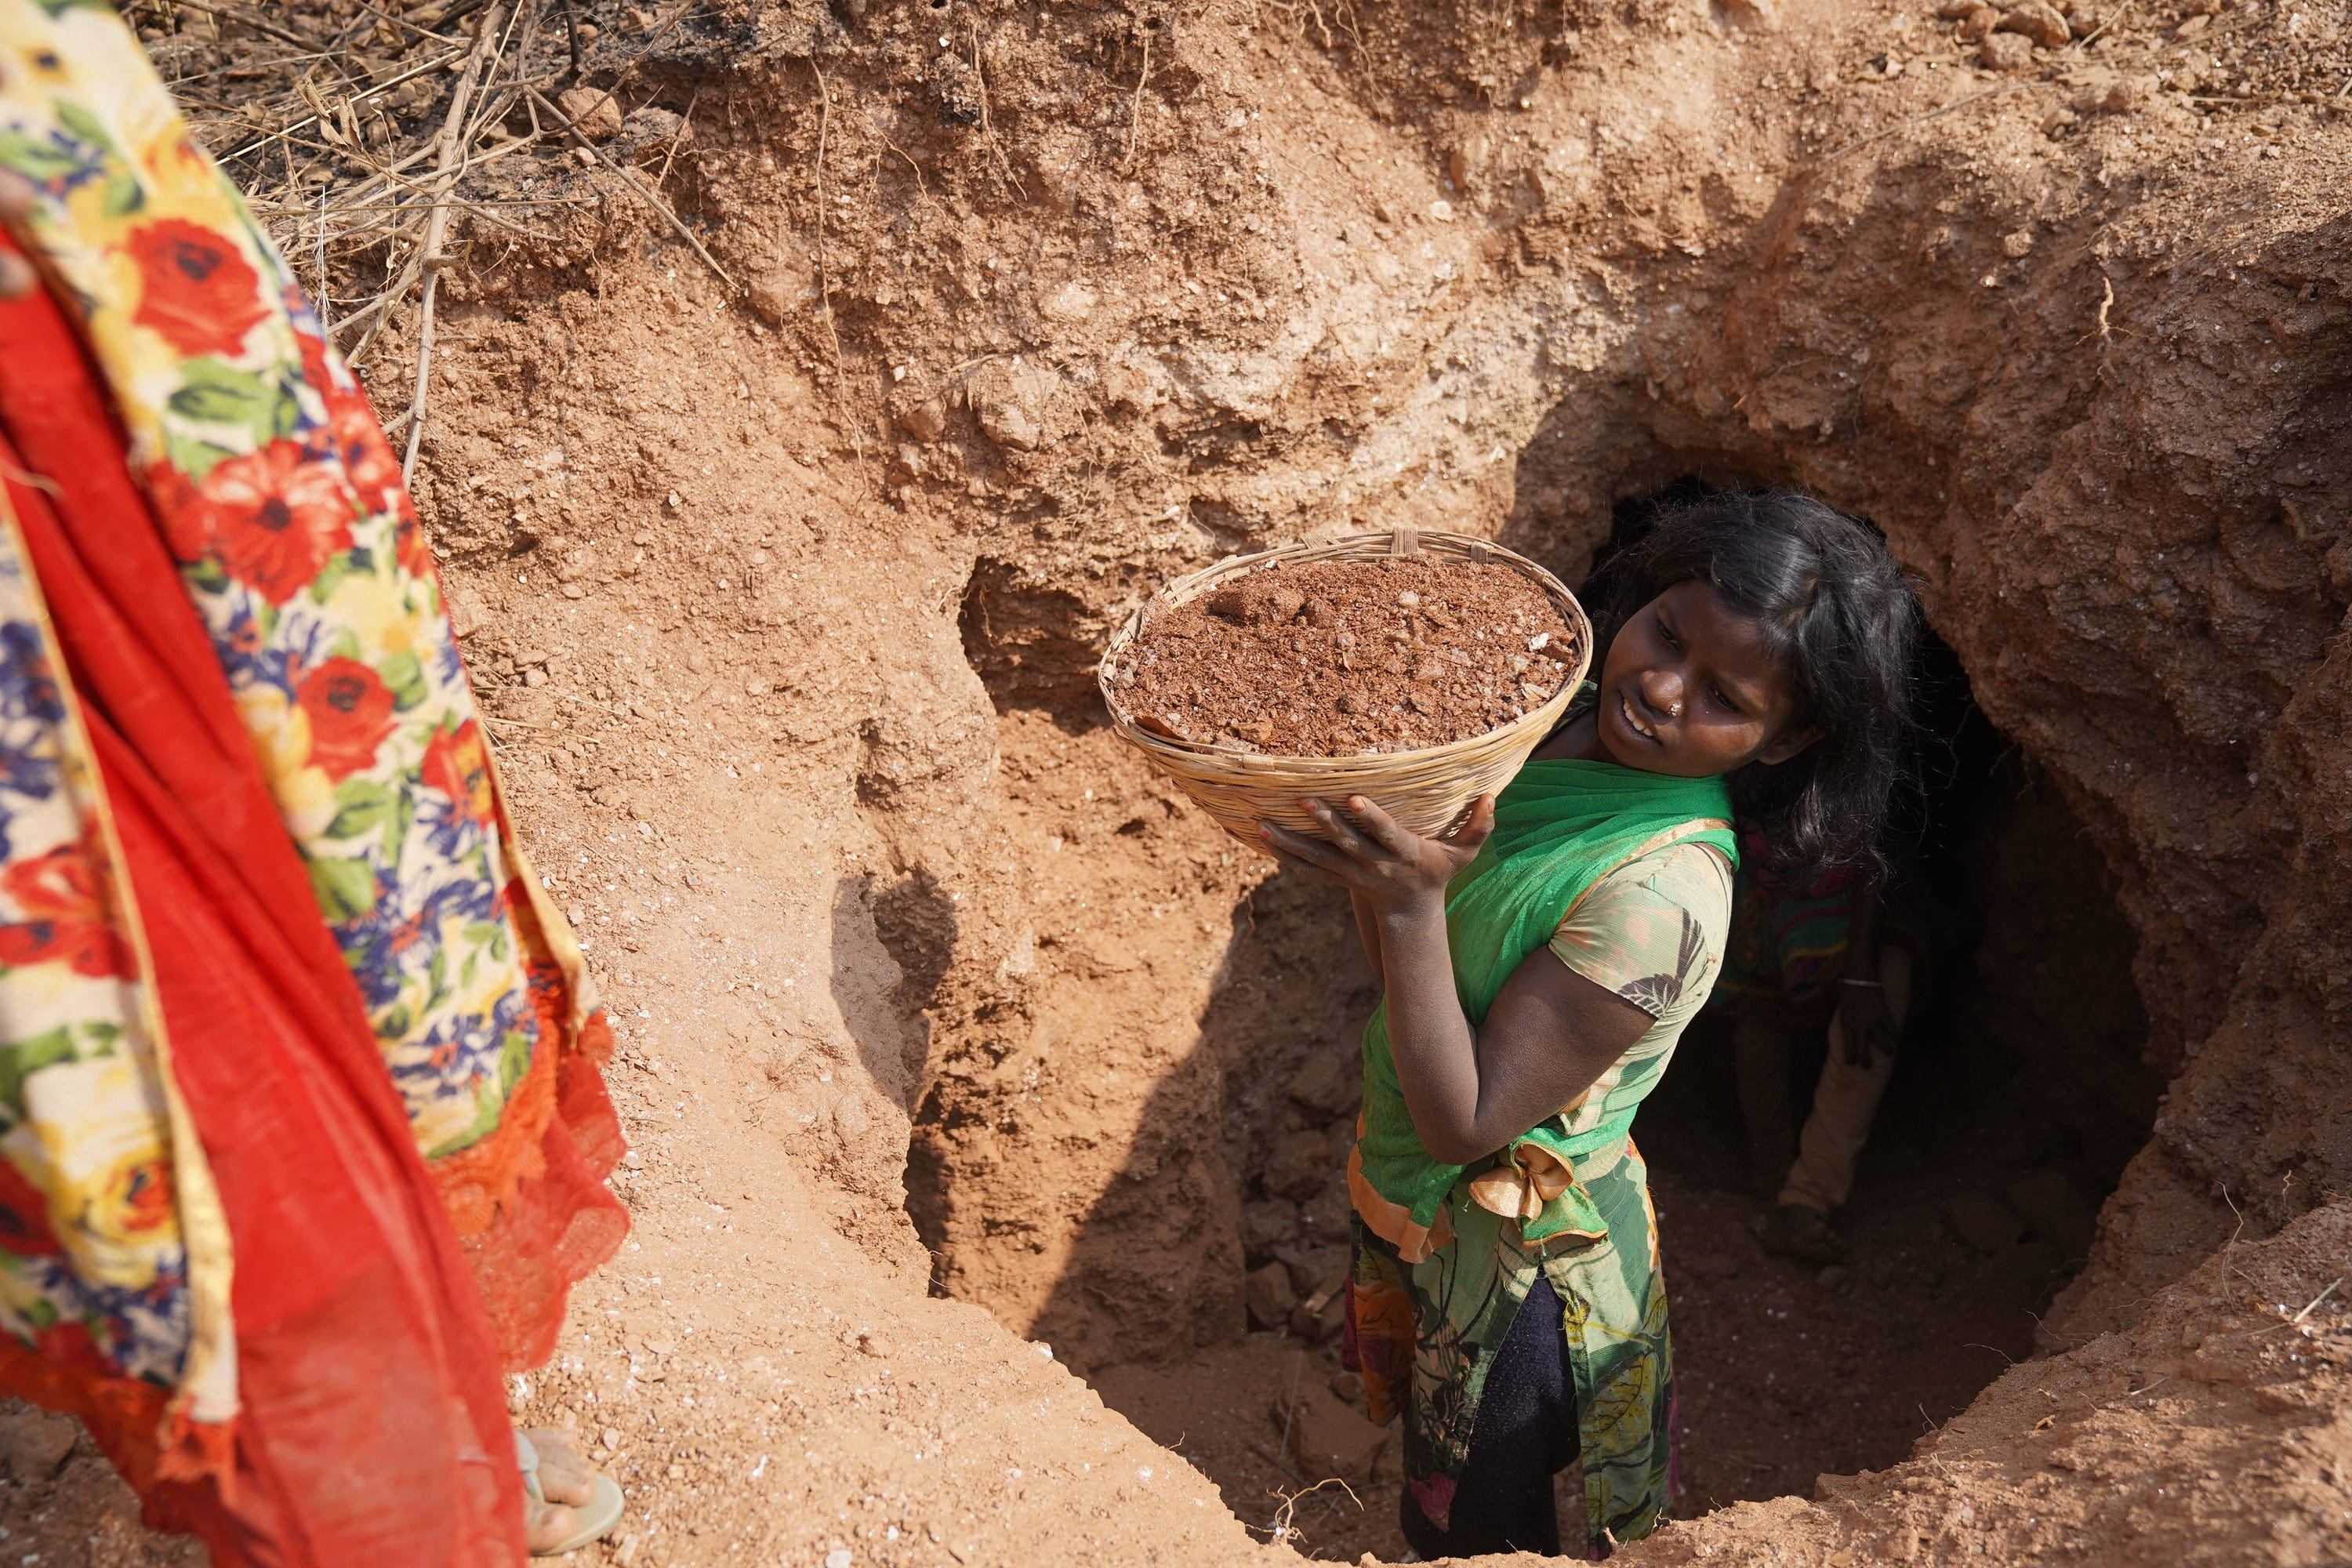 Mica Mining Exposes Child Labor In The Makeup Industry